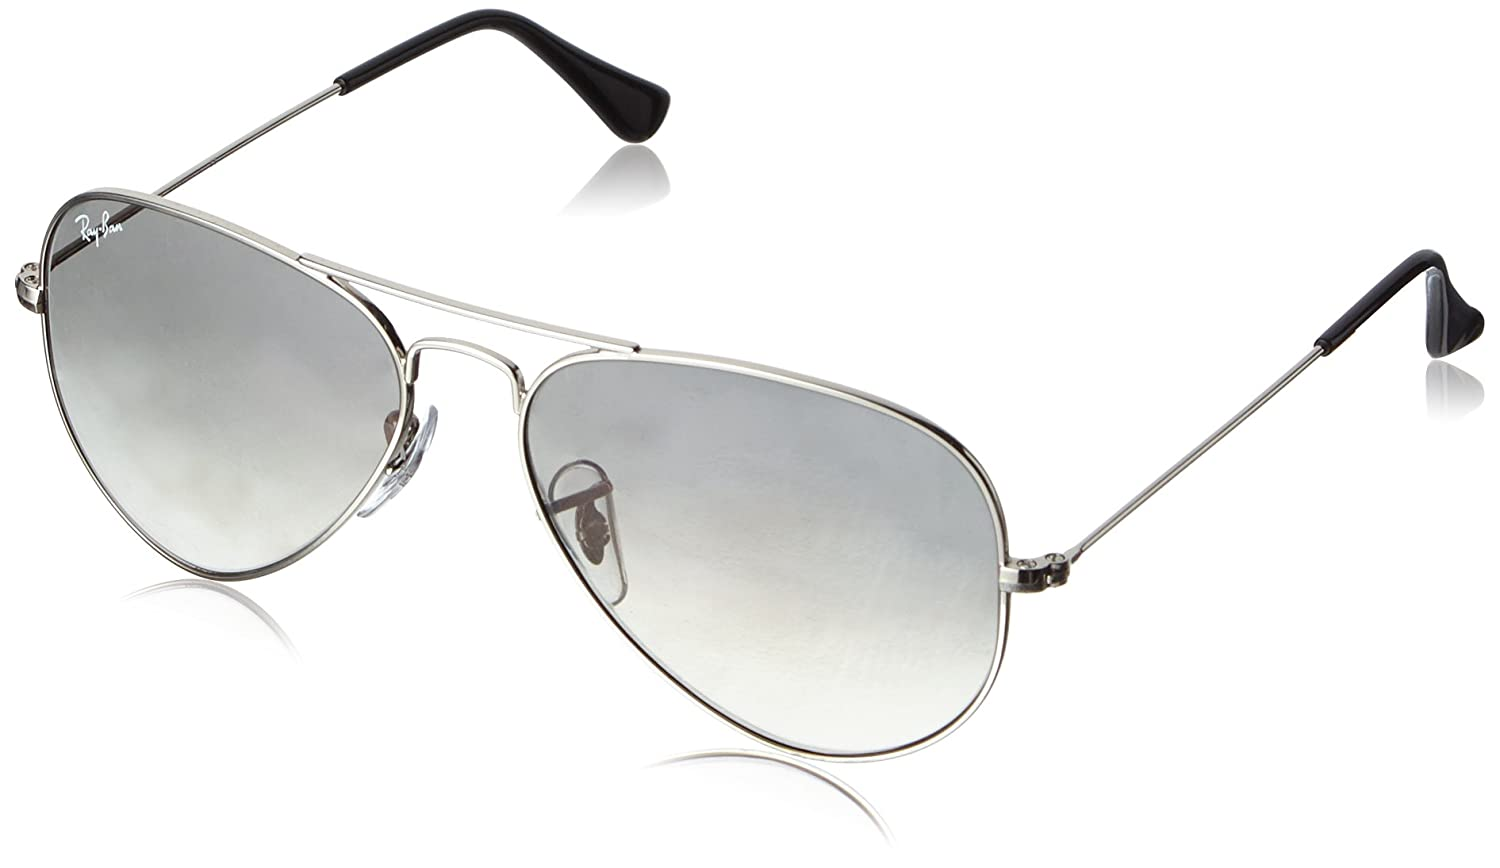 a488ad60a82ce Amazon.com  Ray-Ban 0RB3025 Aviator Metal Non-Polarized Sunglasses, Silver